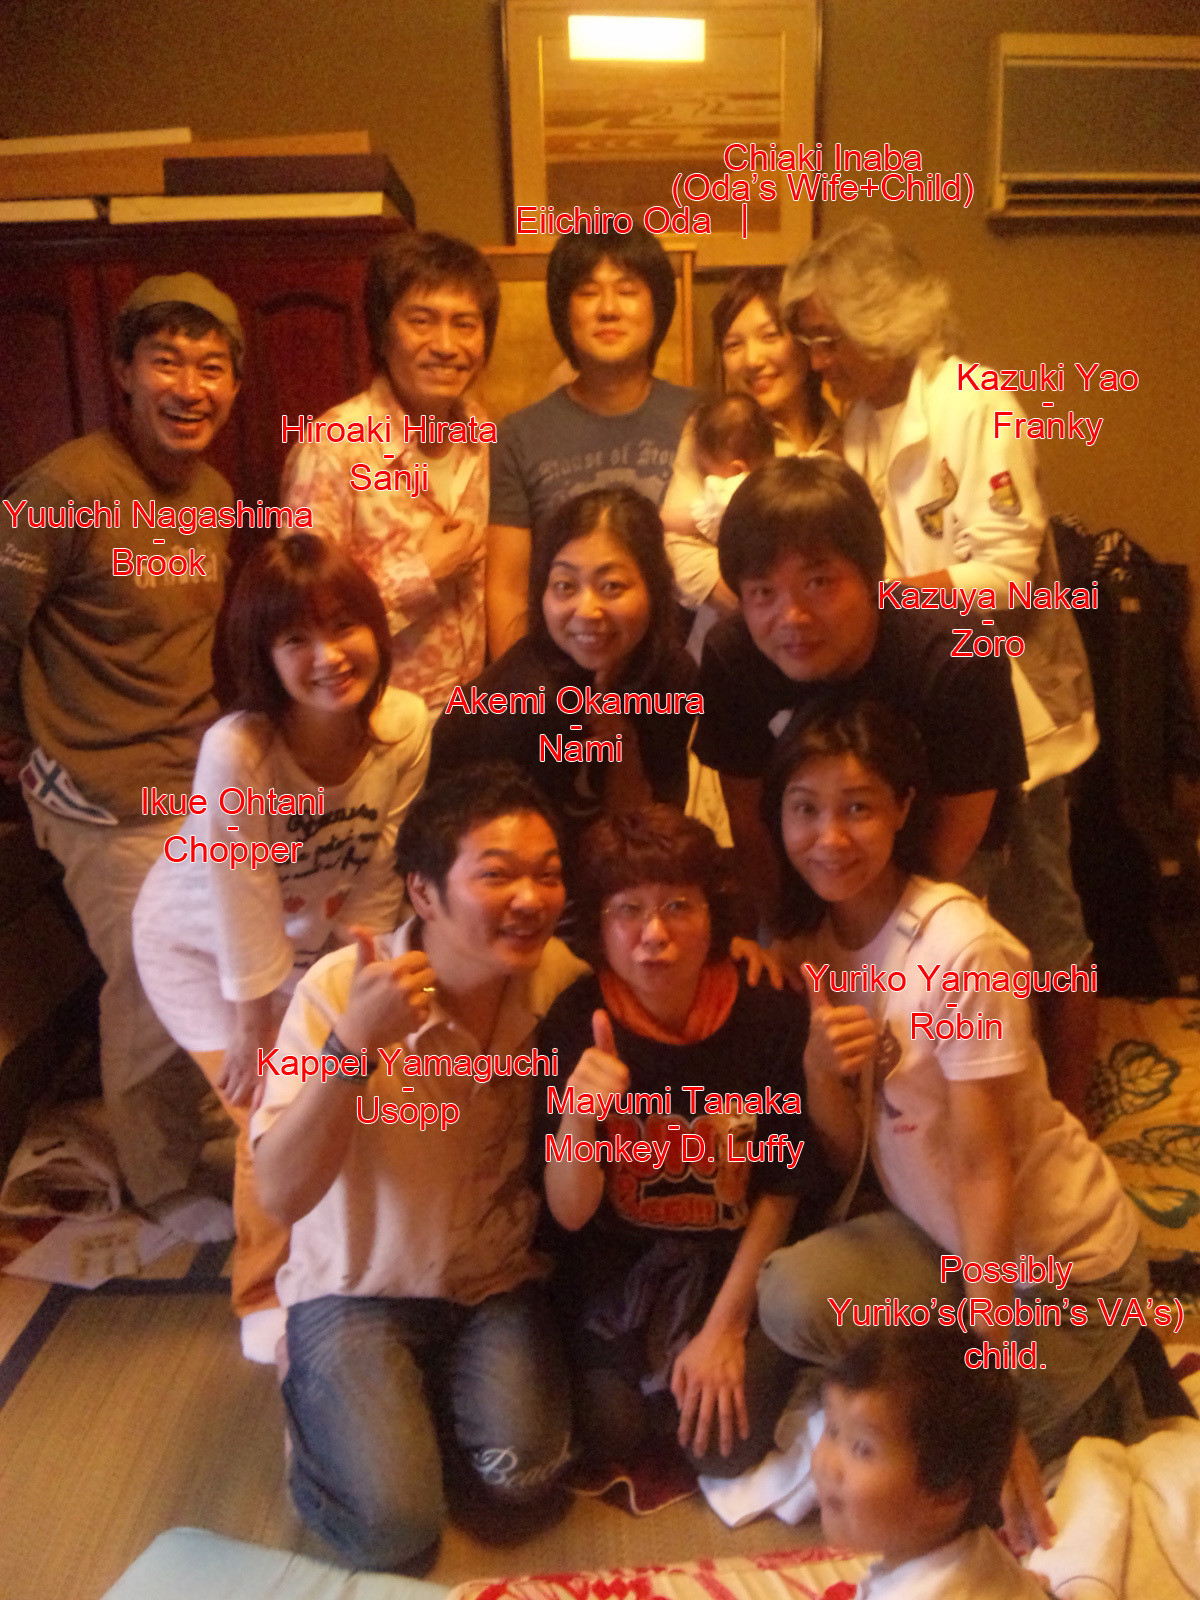 the cast. join list: onepiece (236 subs)Mention History.. Franky's VA looks like he dresses up as Franky